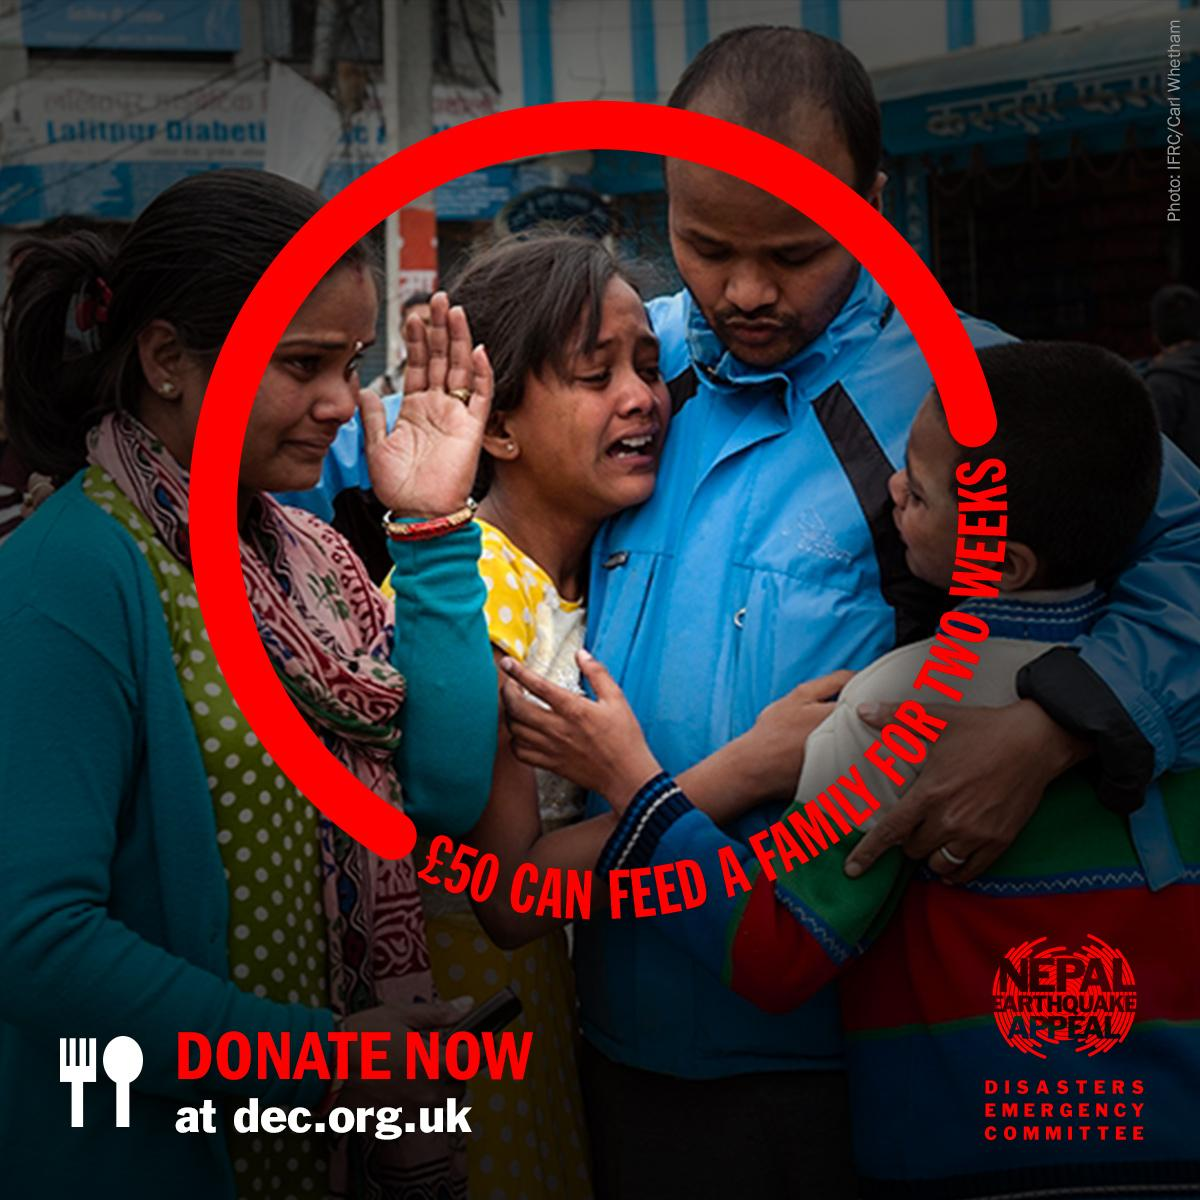 Nepal still urgently needs our help! Donate to support #NepalQuake @decappeal here: http://t.co/h0AcDrYRW5 @oxfamgb http://t.co/ObecaRsnDn